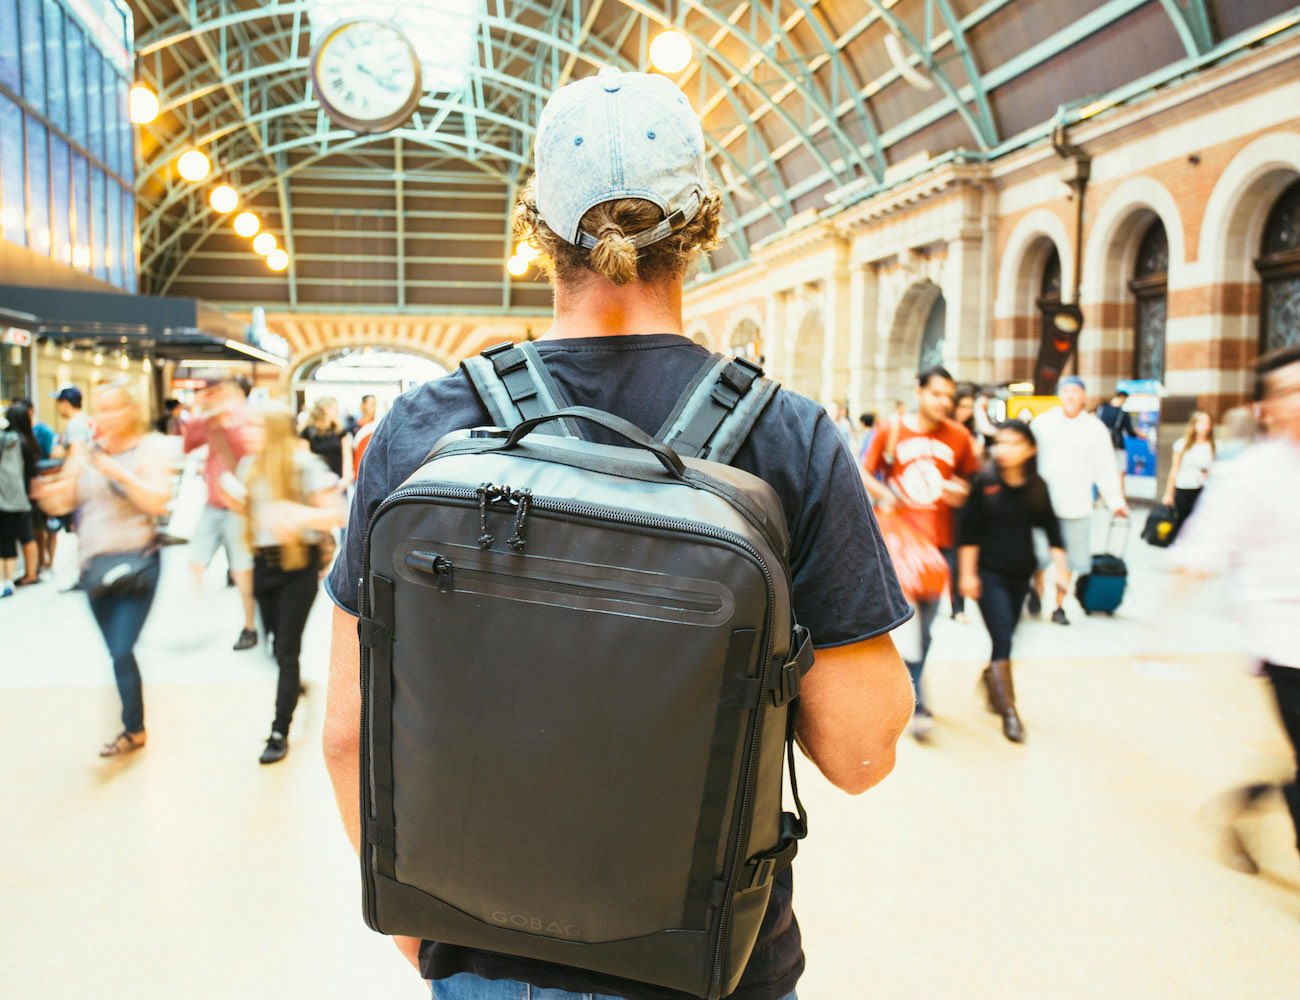 GOBAG – The Ultimate Carry-On Duffel Bag For Any Adventure